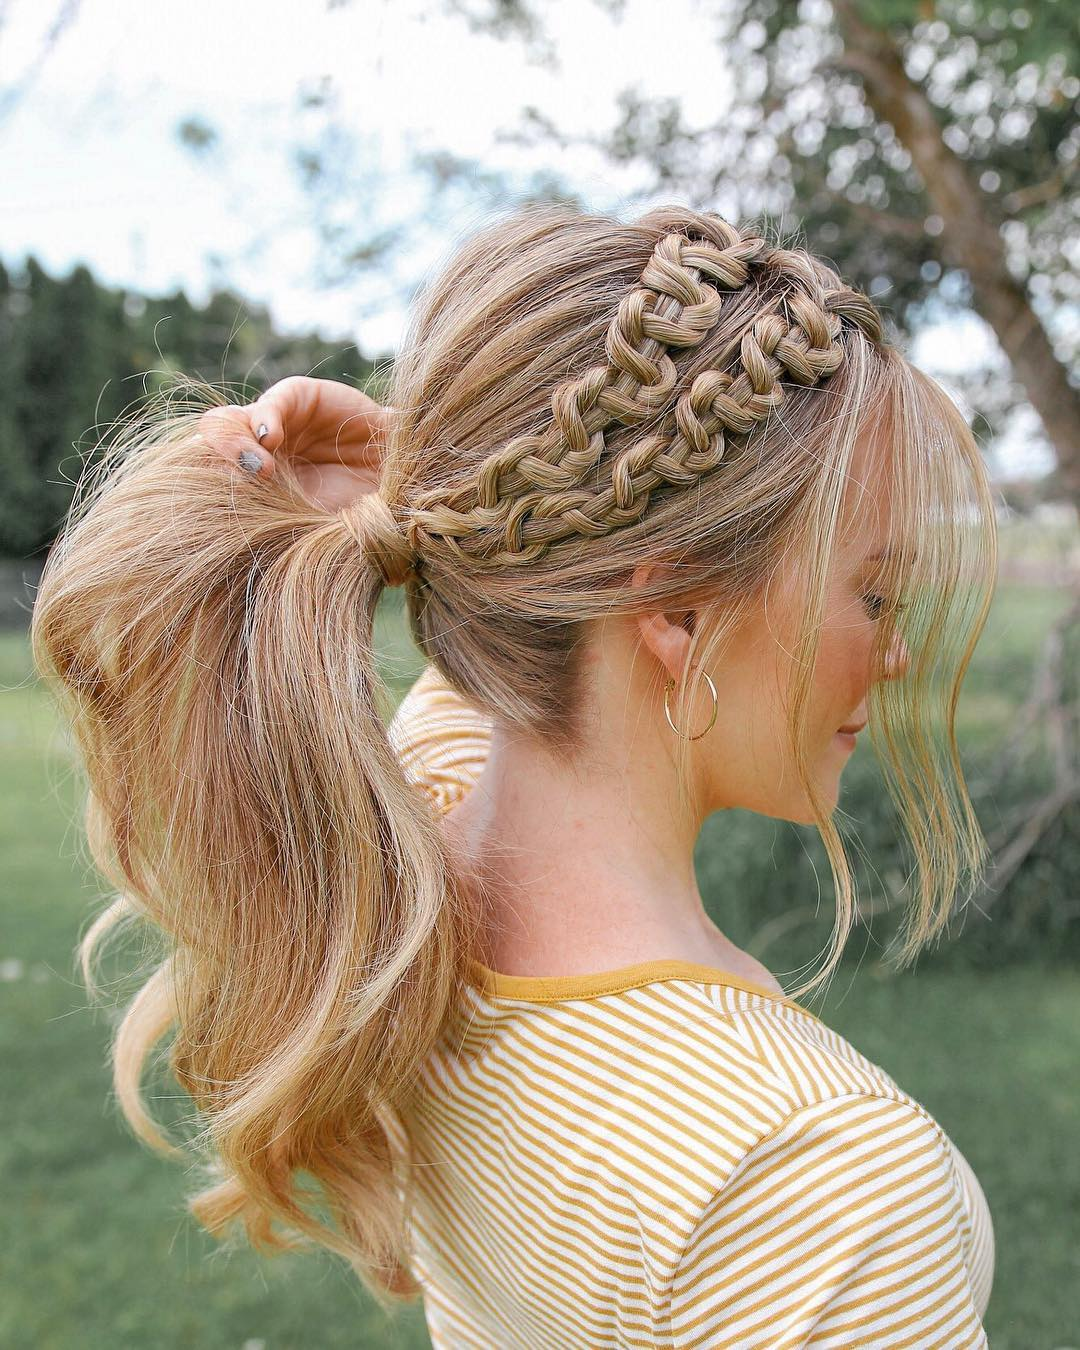 10 Creative Ponytail Hairstyles for Long Hair, Summer Hairstyle Ideas 2019